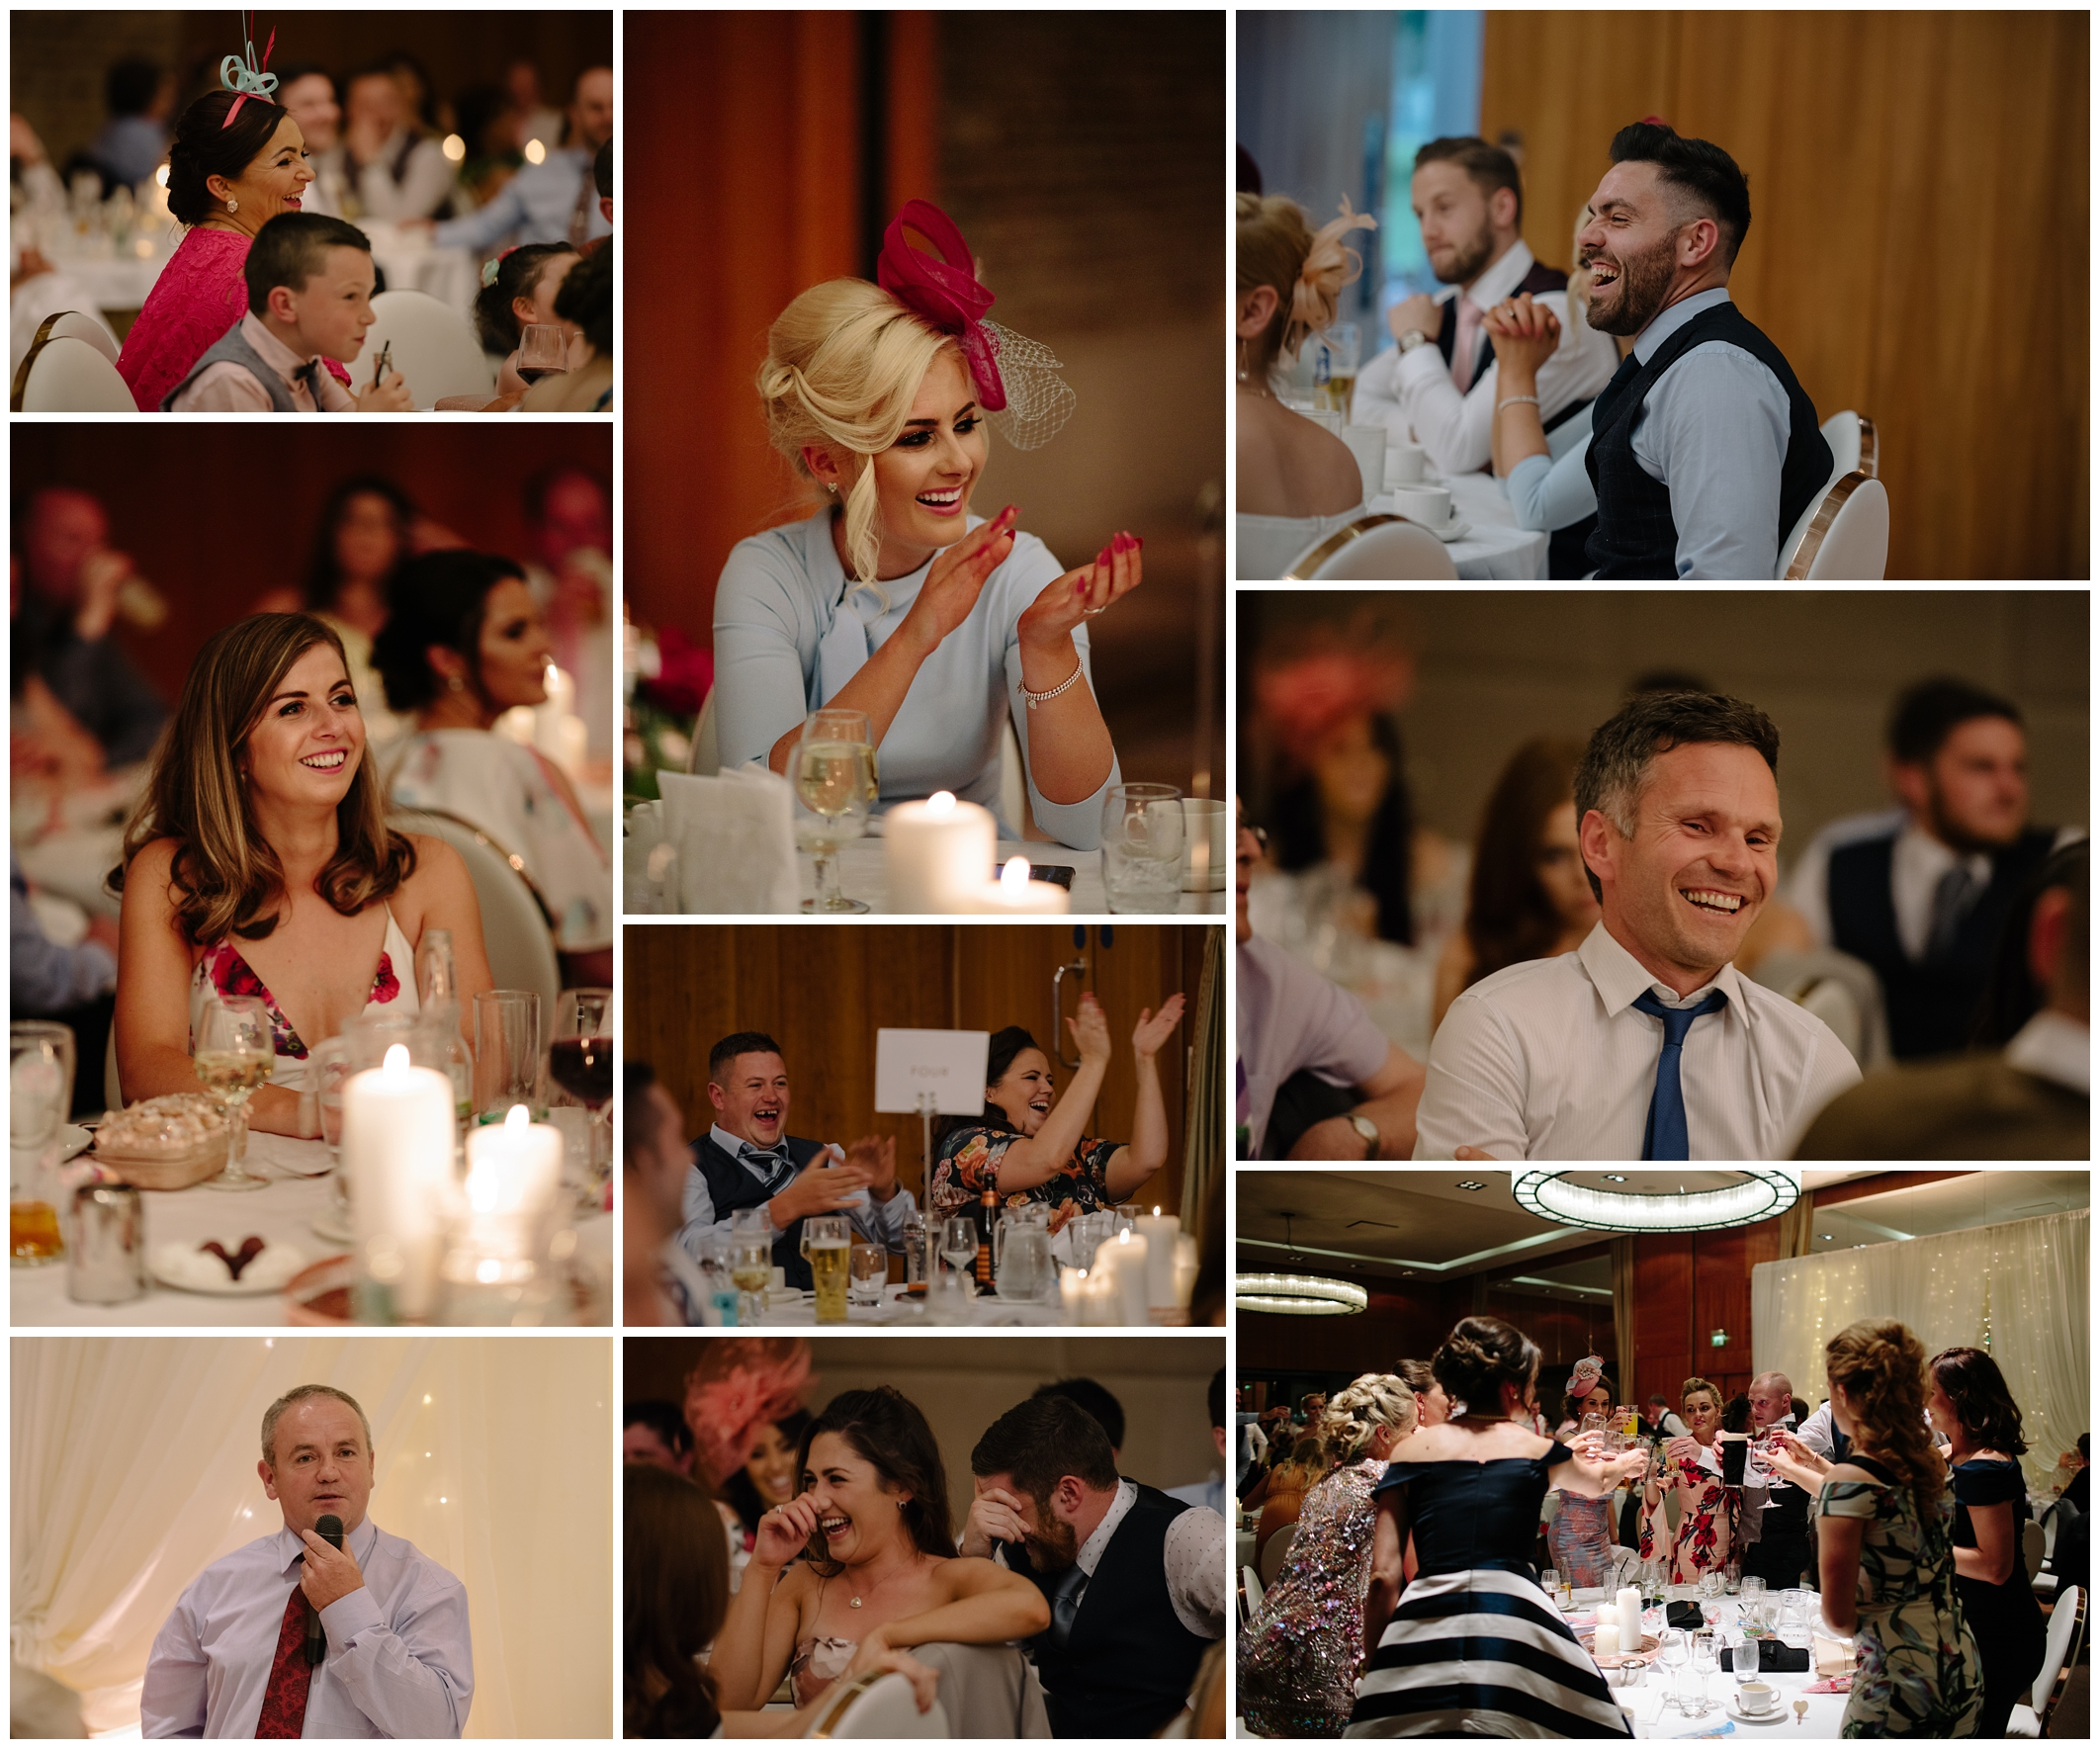 sinead_emmet_farnham_estate_wedding_jude_browne_photography_0146.jpg